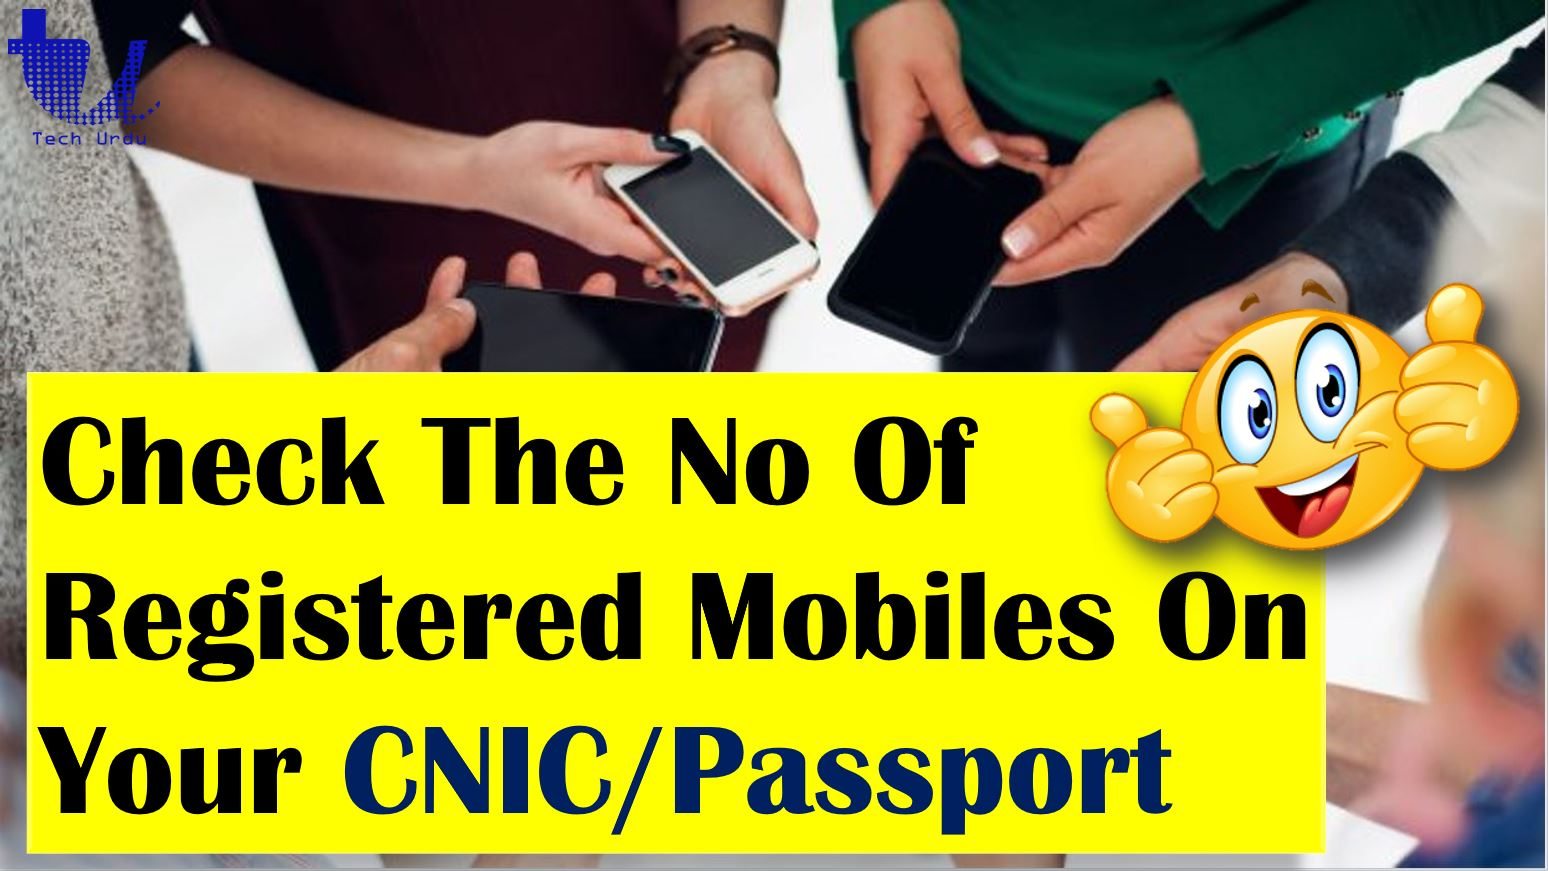 Here is How to Check The Number Of Registered Mobile Phones